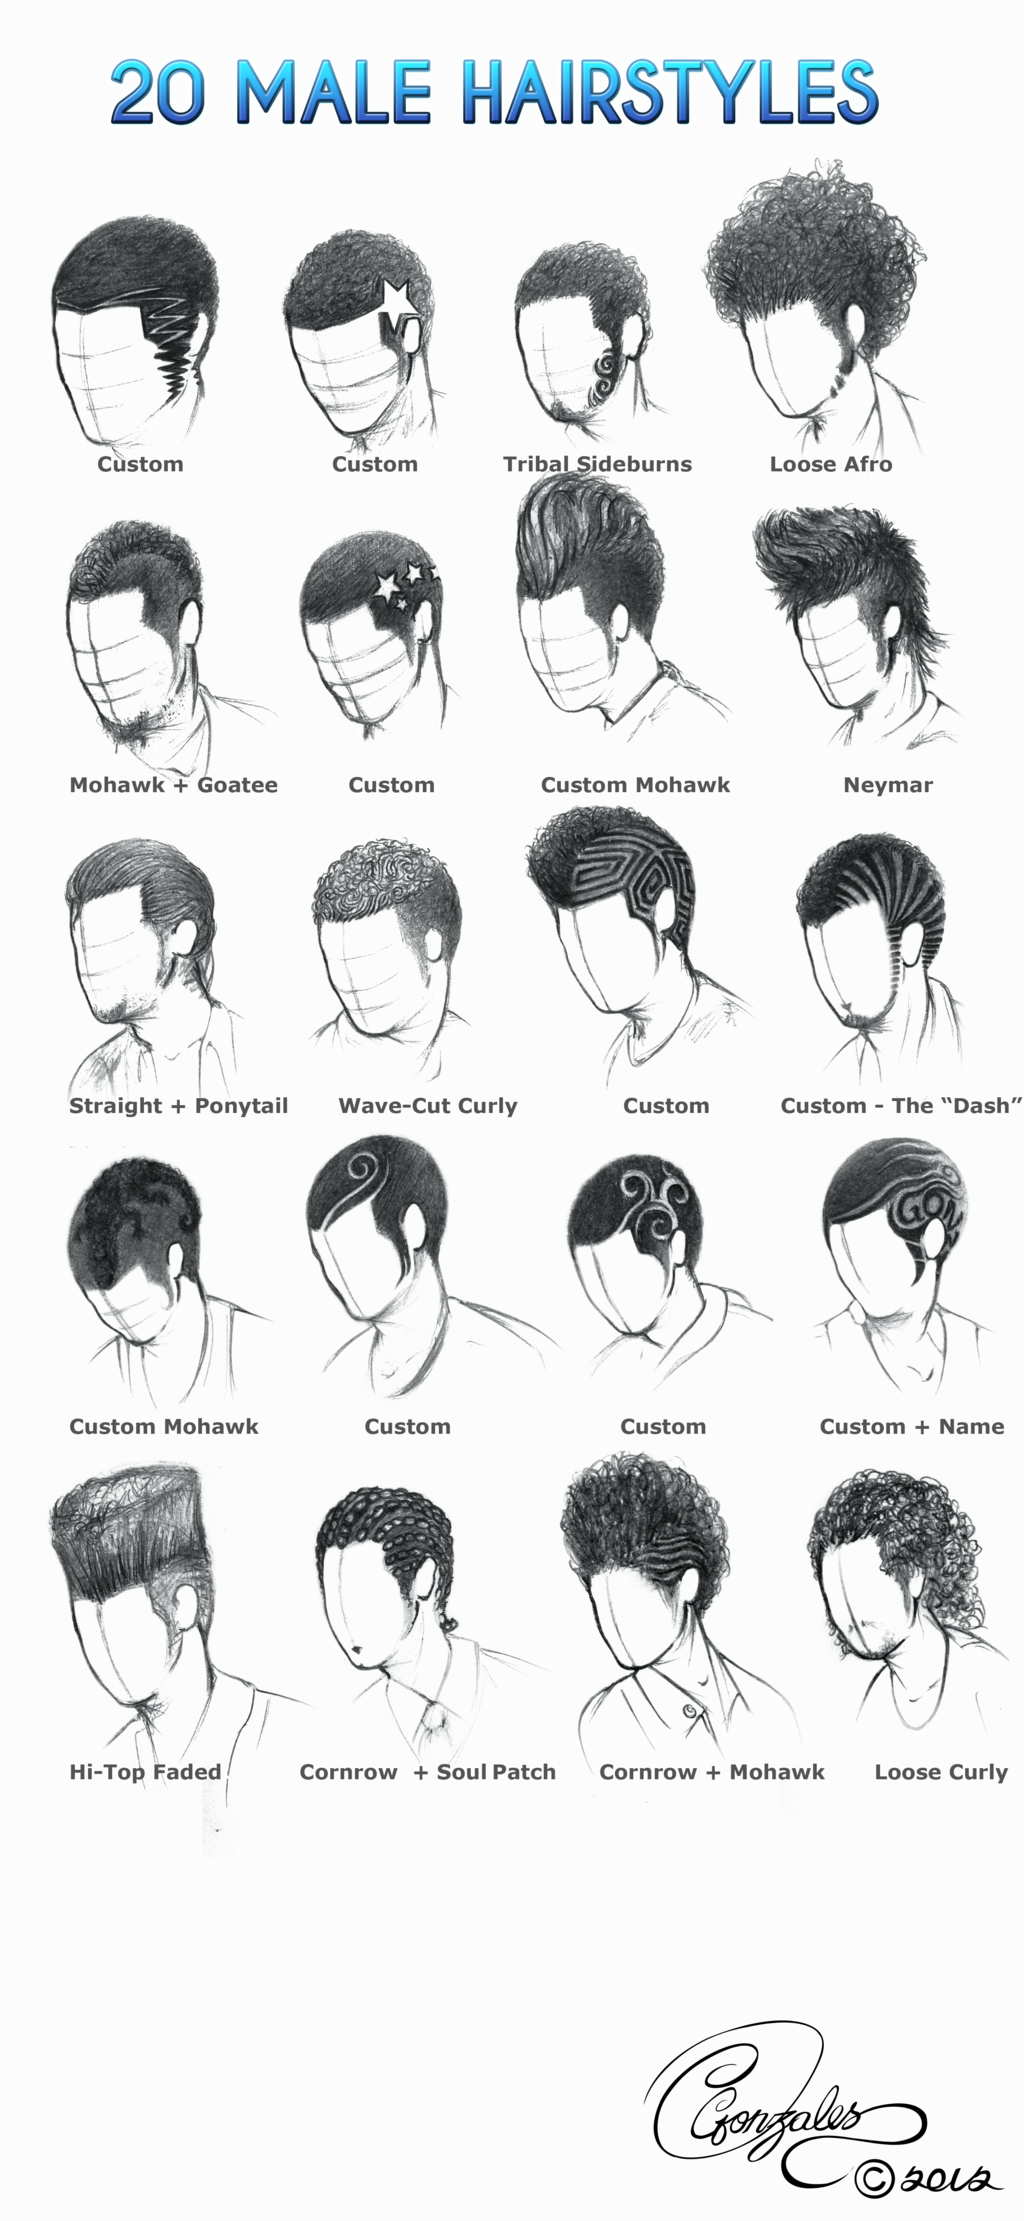 20 Male Hairstyles By Gunzy1 On Deviantart Drawing Hair Tutorial Curly Hair Drawing How To Draw Hair